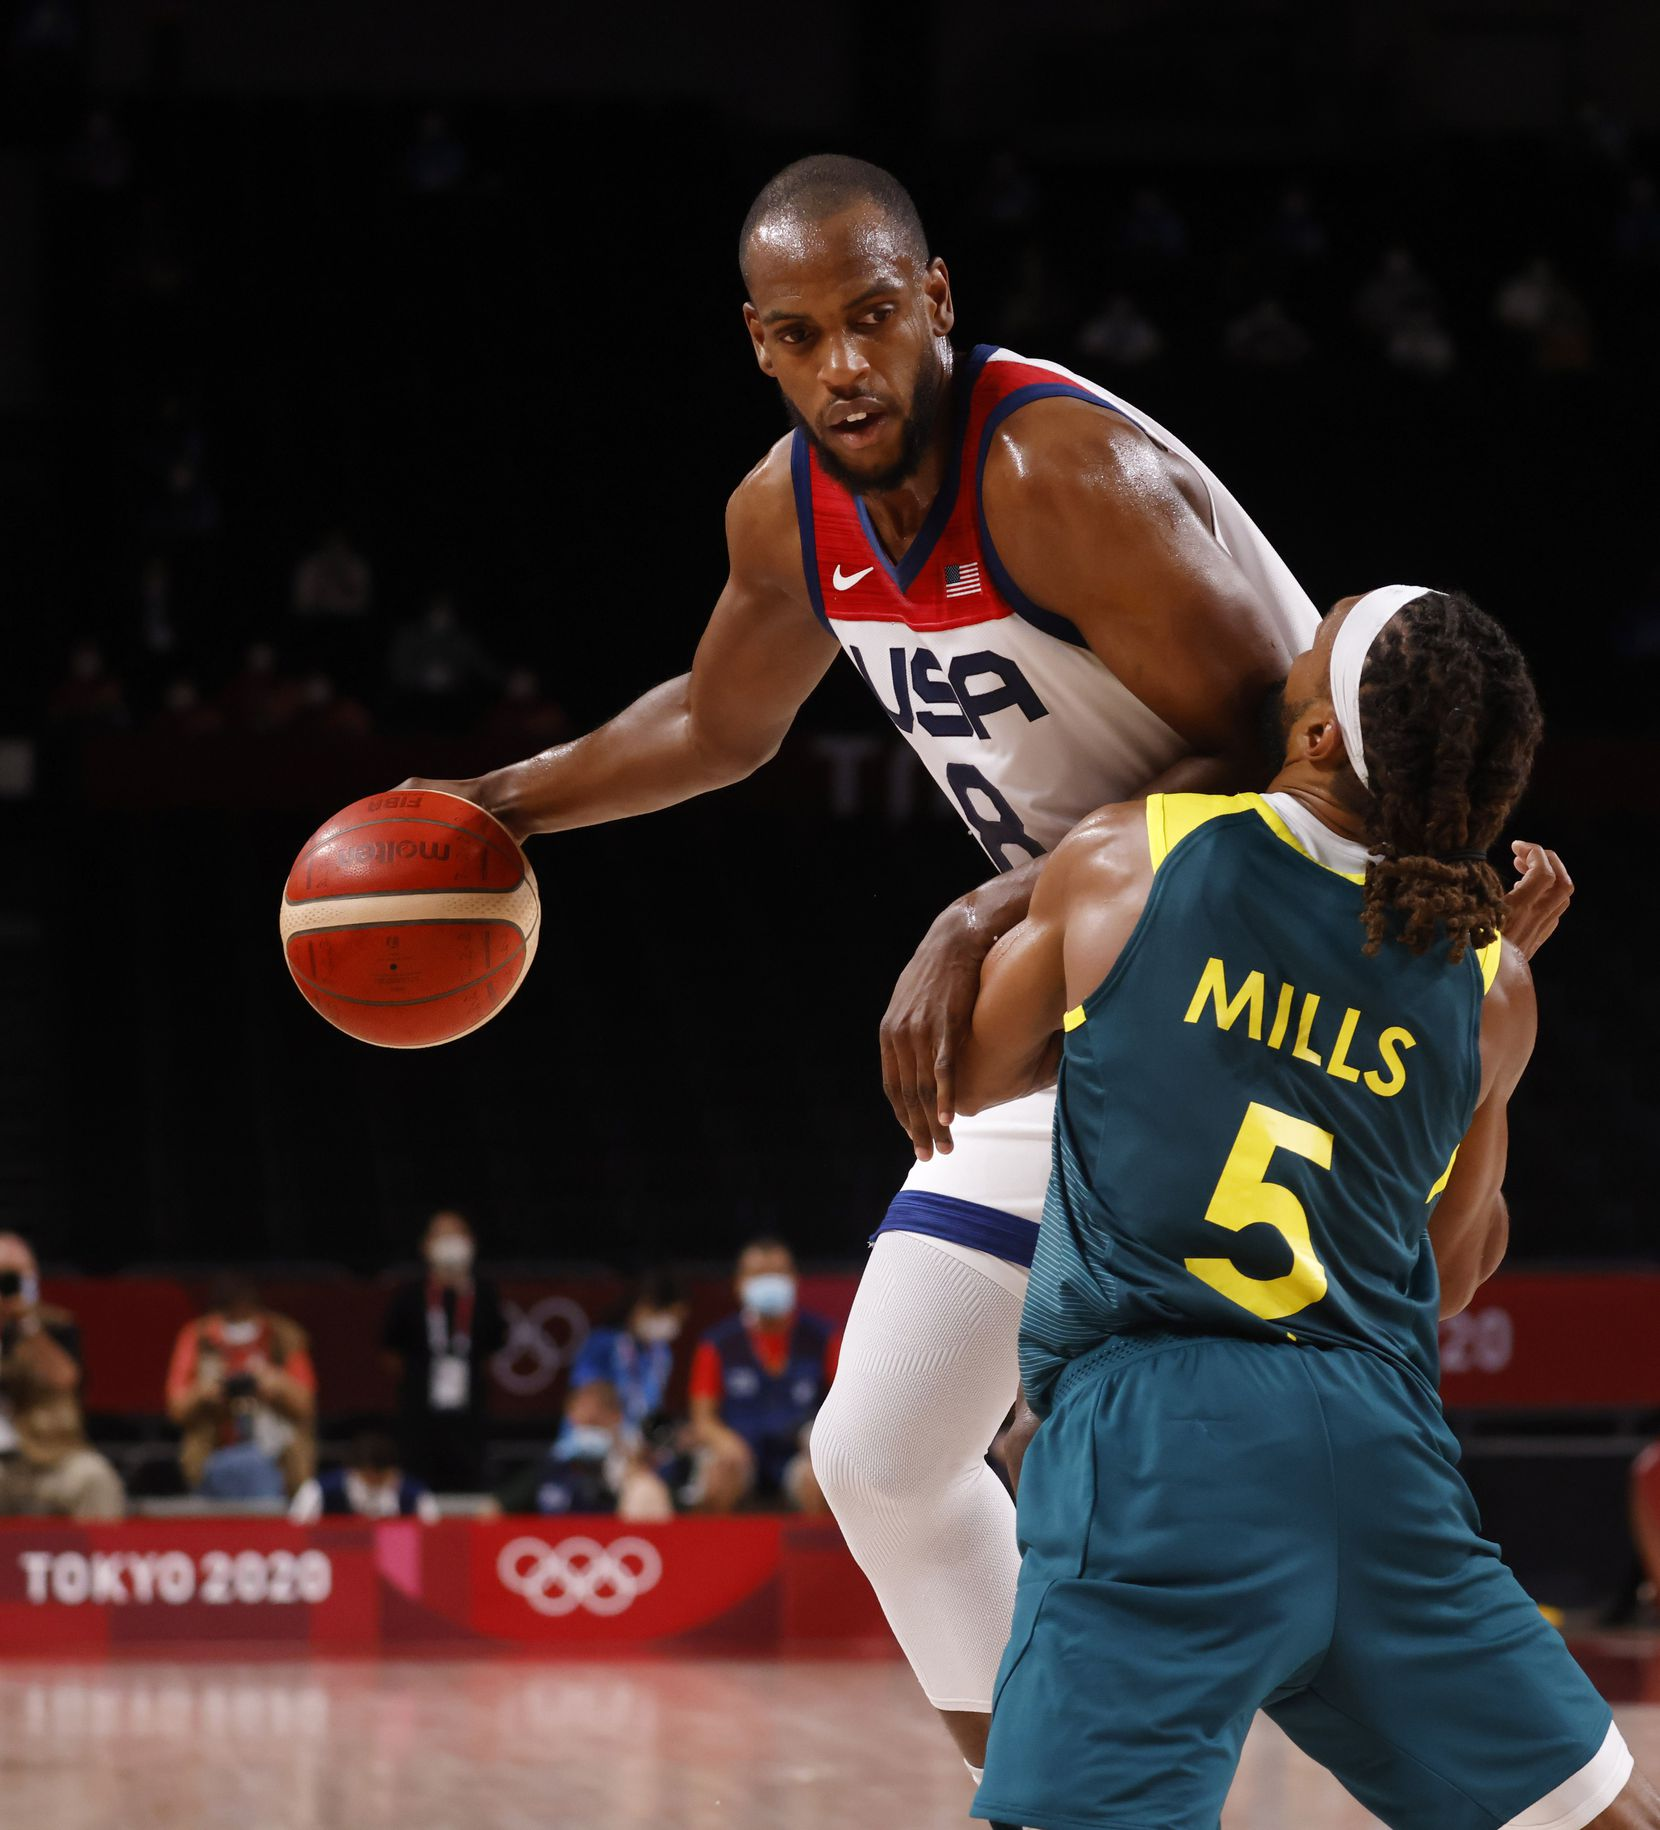 USA's Khris Middleton (8) posts up Australia's Patty Mills (5) during the second half of a men's basketball semifinal at the postponed 2020 Tokyo Olympics at Saitama Super Arena, on Thursday, August 5, 2021, in Saitama, Japan. USA defeated Australia 97-78 to advance to the gold medal game. (Vernon Bryant/The Dallas Morning News)